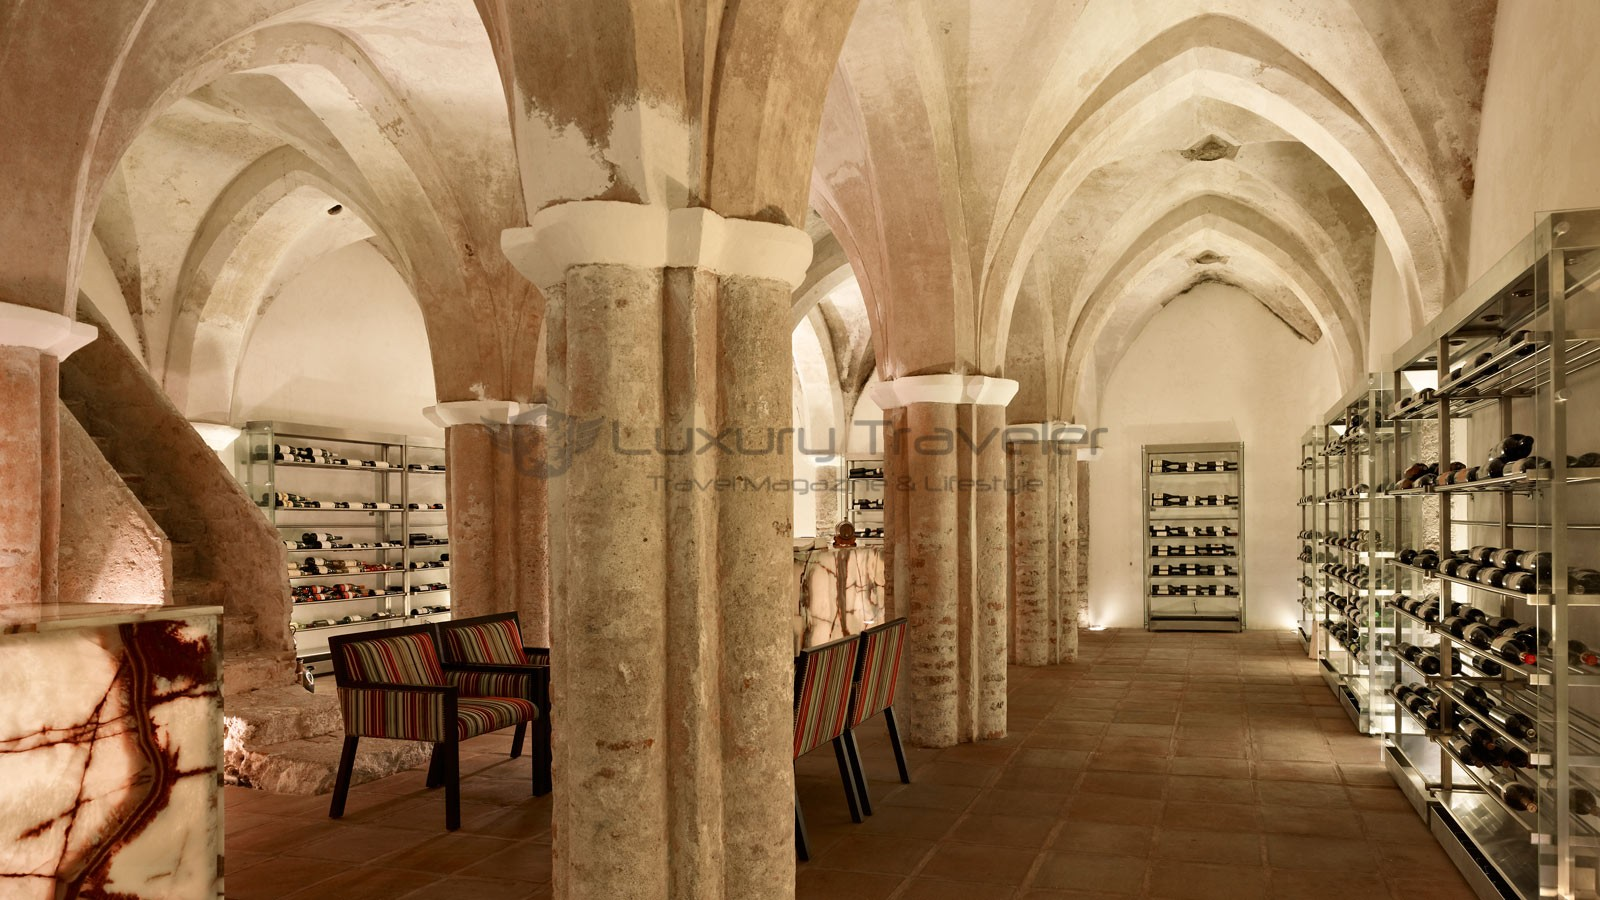 Convento_Espinheiro_Hotel_Evora_Starwood_Luxury_Wine_Cellar